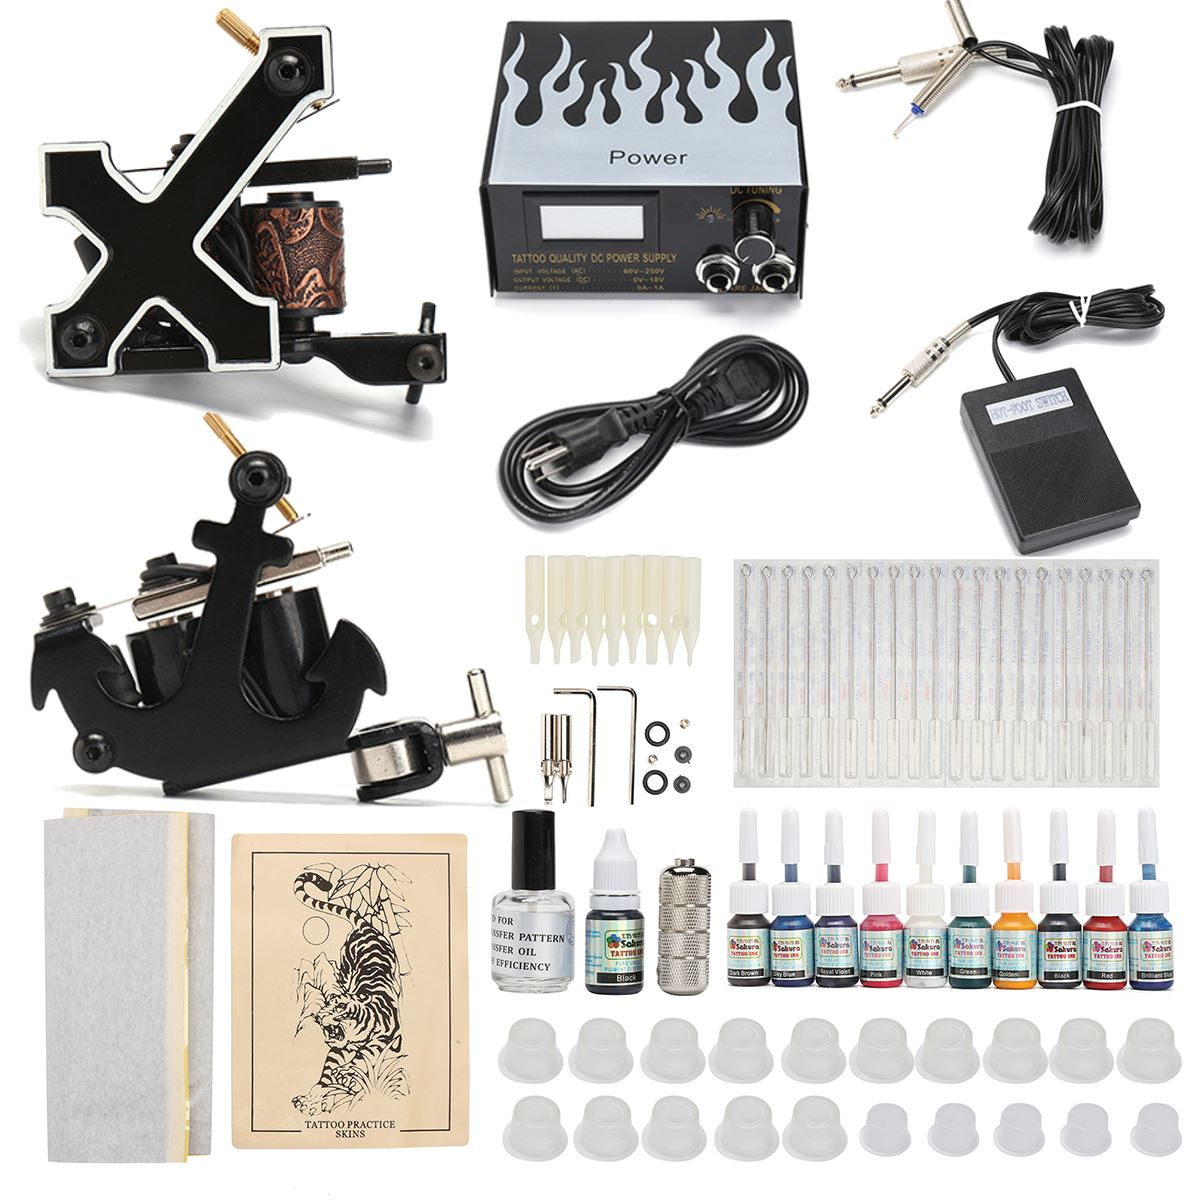 Complete Tattoo Kit 2 Tattoo Machine Tool Power Supply Needles 10 Color Inks 20pcs Needles Permanent Makeup Body Tattoo Art complete tattoo kit 2 machine gun 20 color inks power supply d175gd